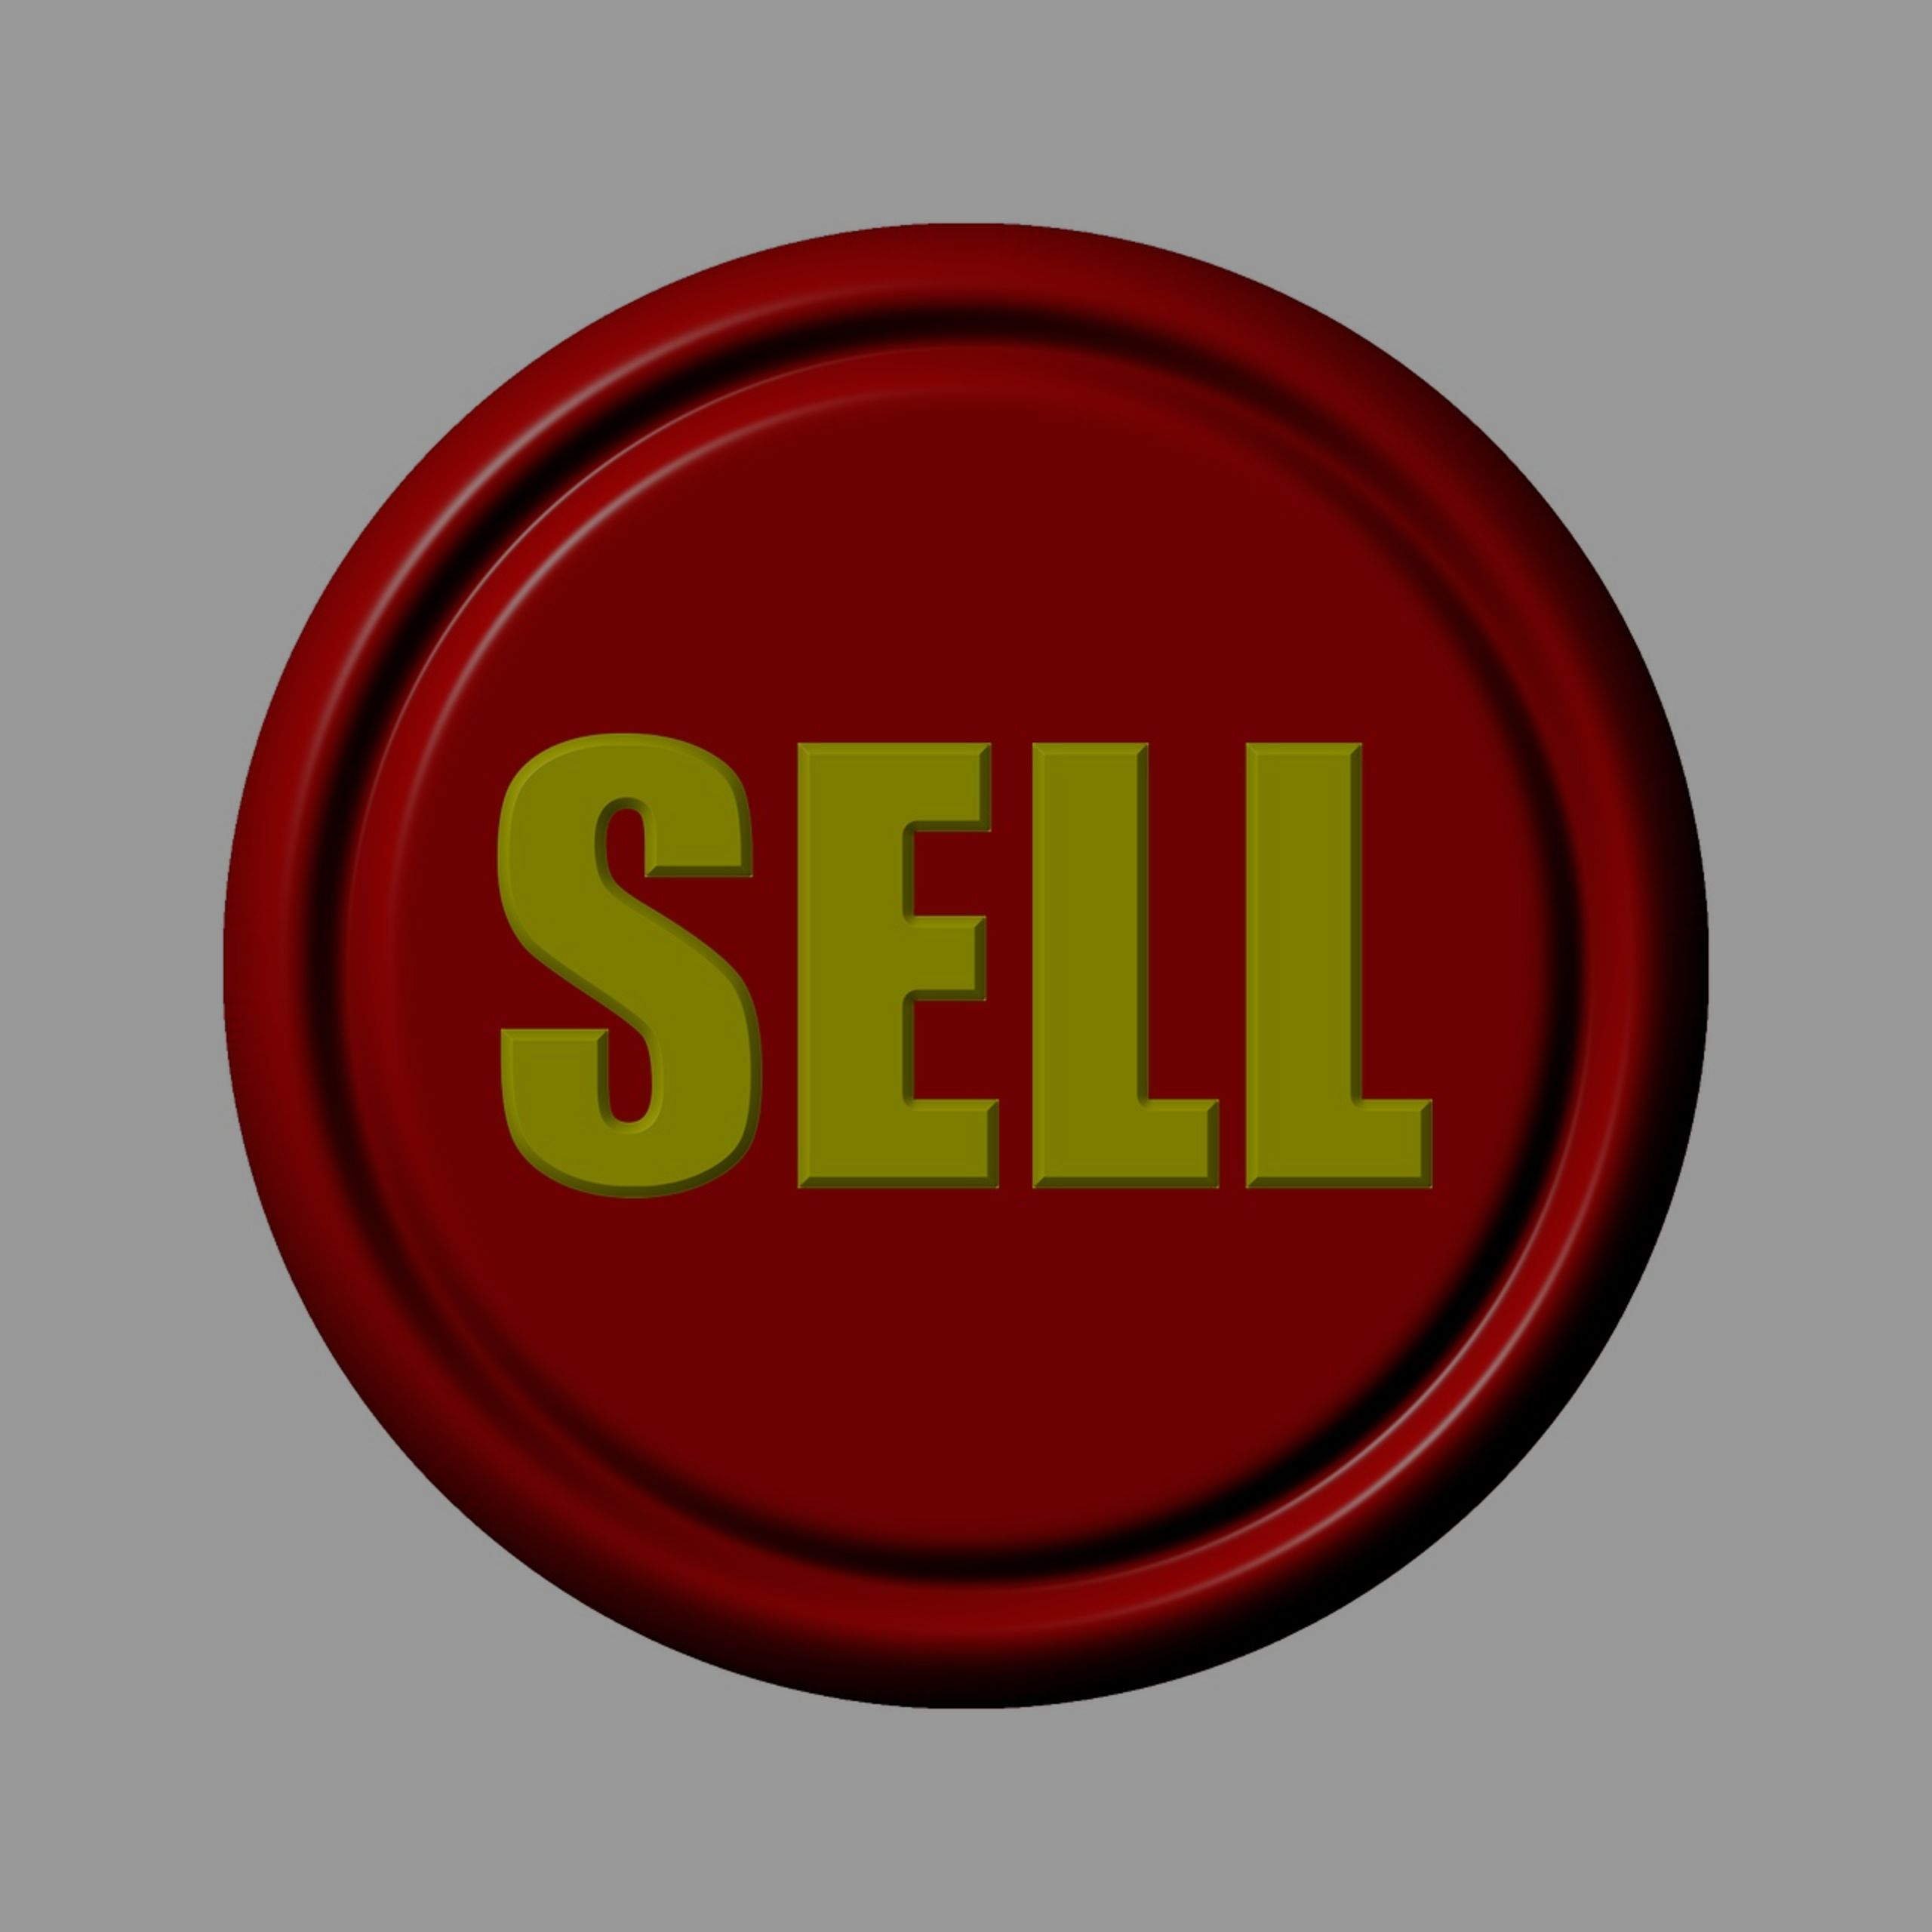 Important Information That Home Sellers Should Know